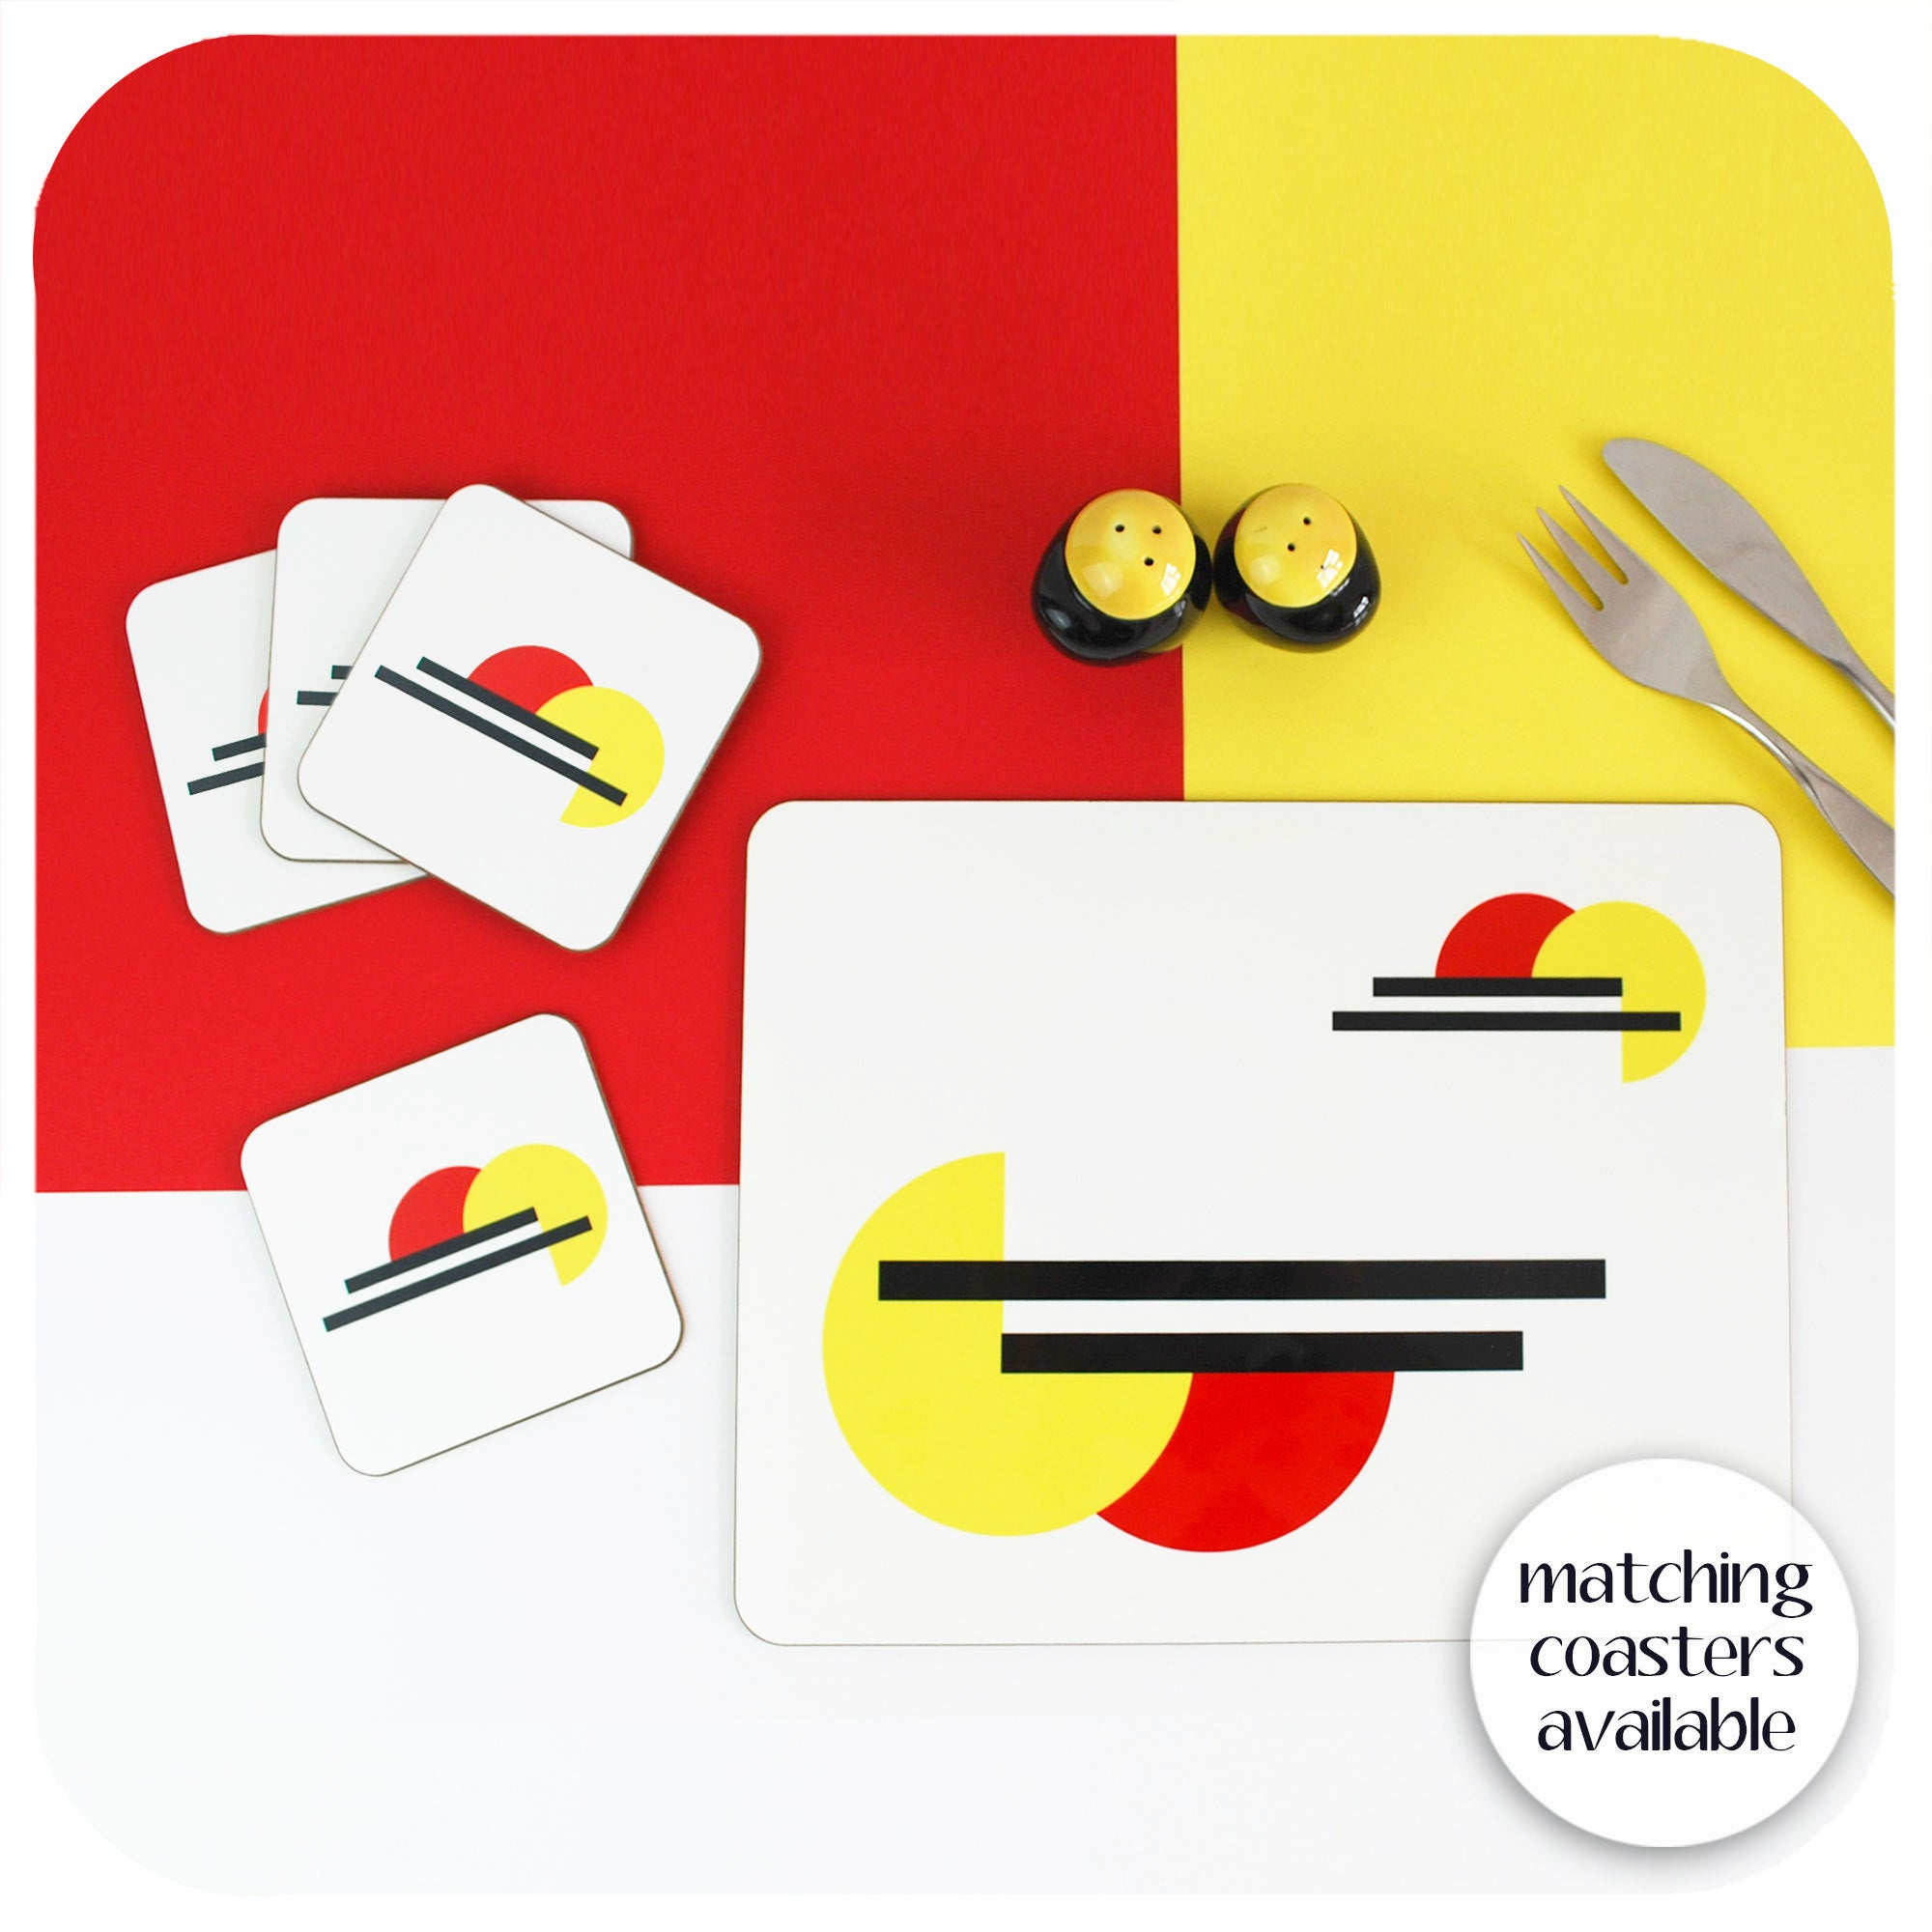 Bauhaus placemat with matching coasters | The Inkabilly Emporium